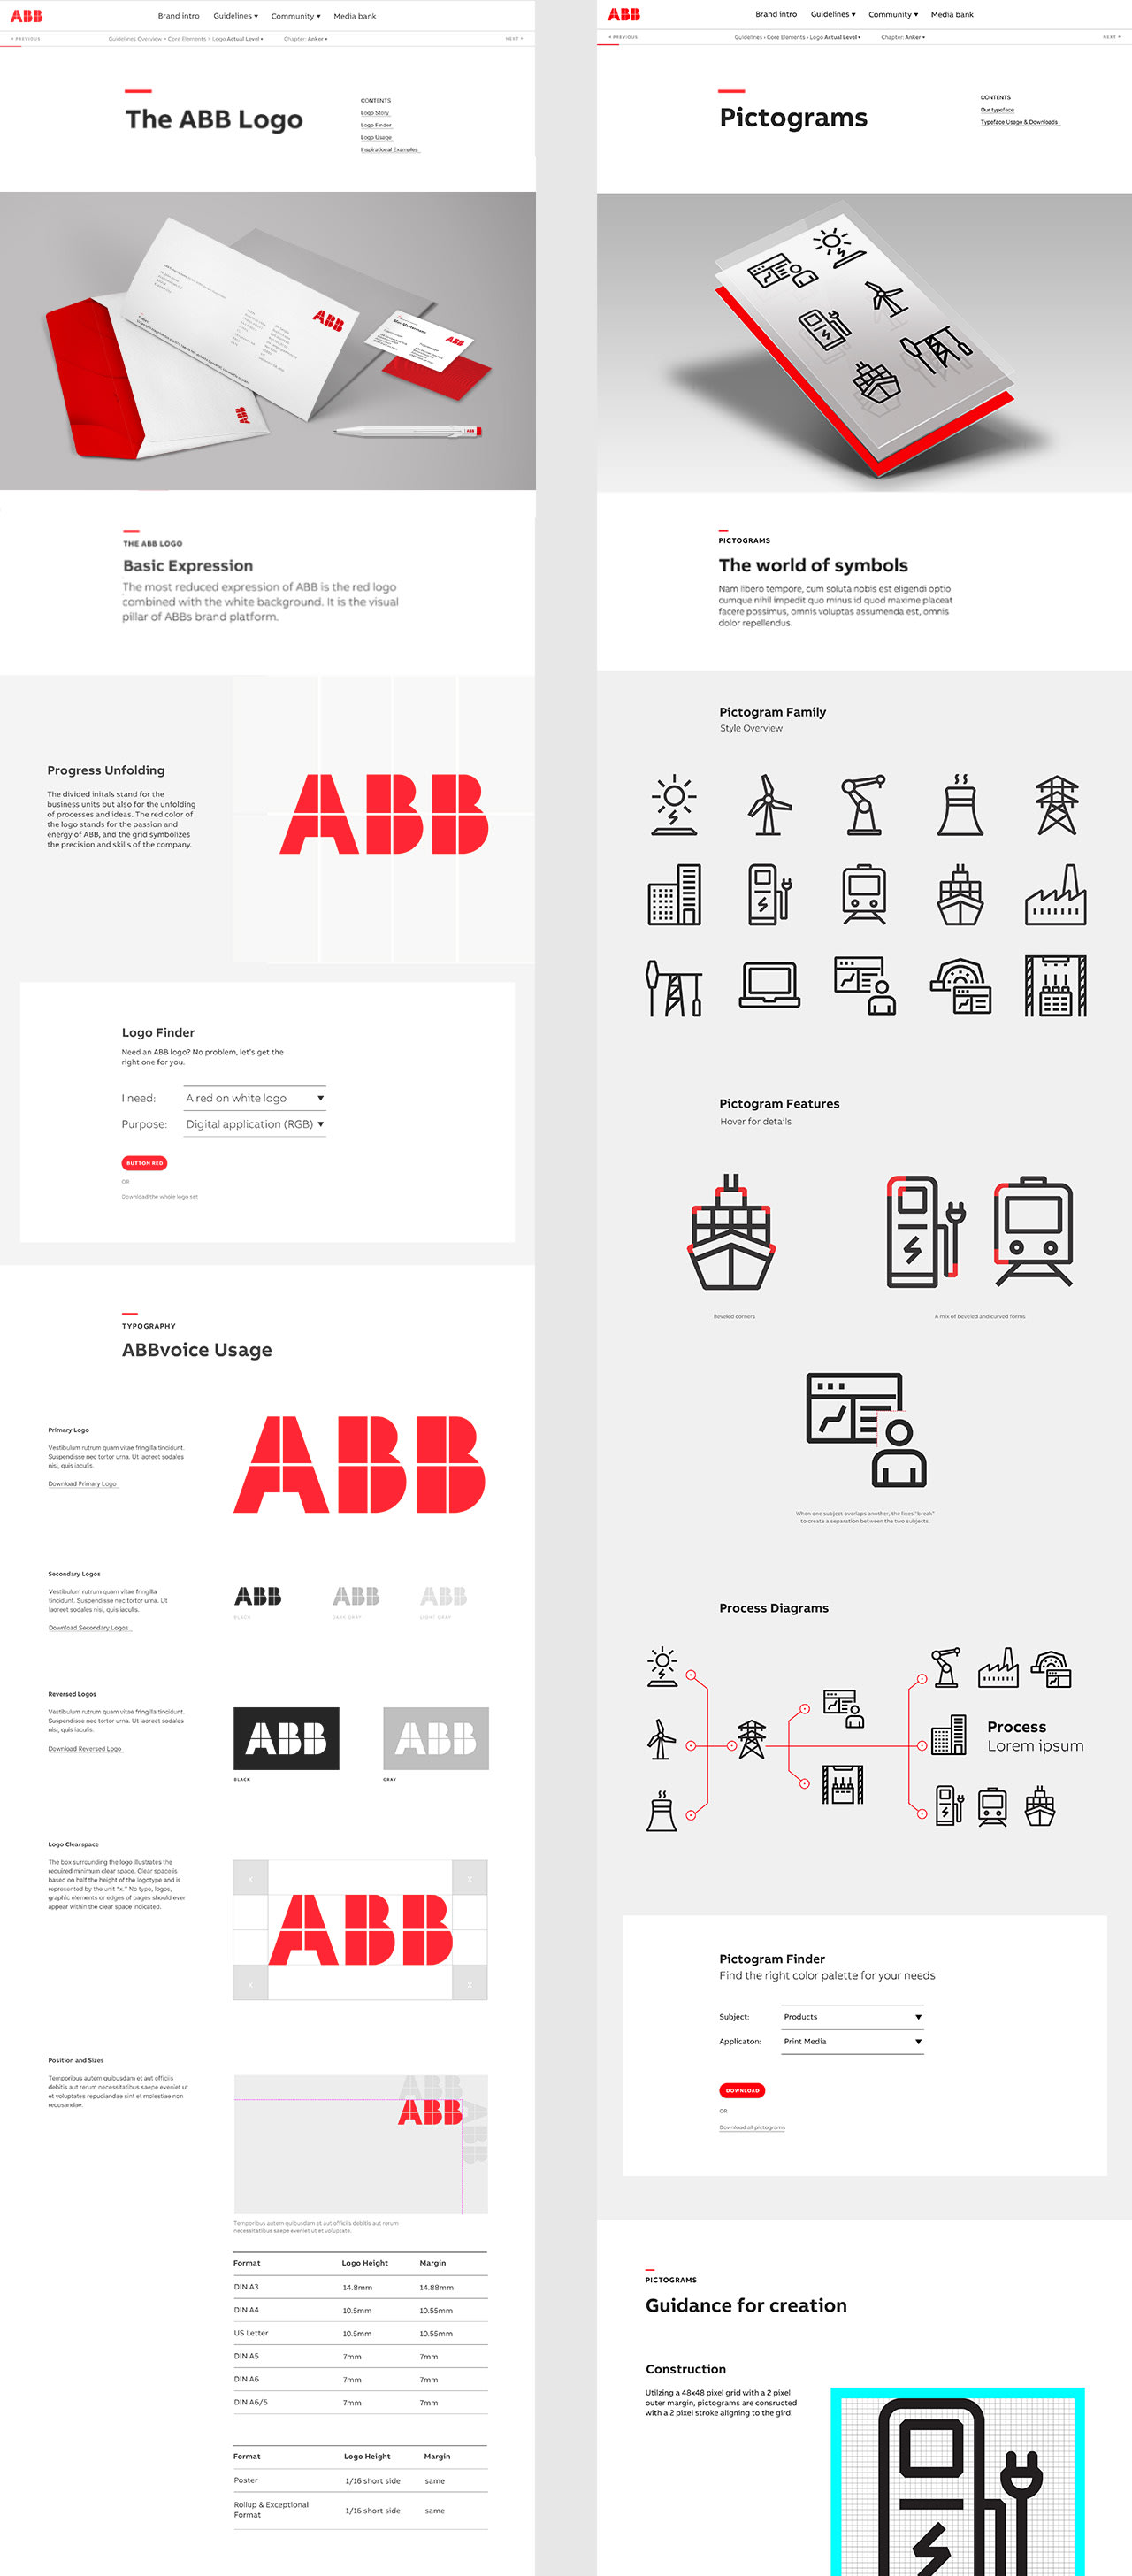 ABB Brand Guidelines